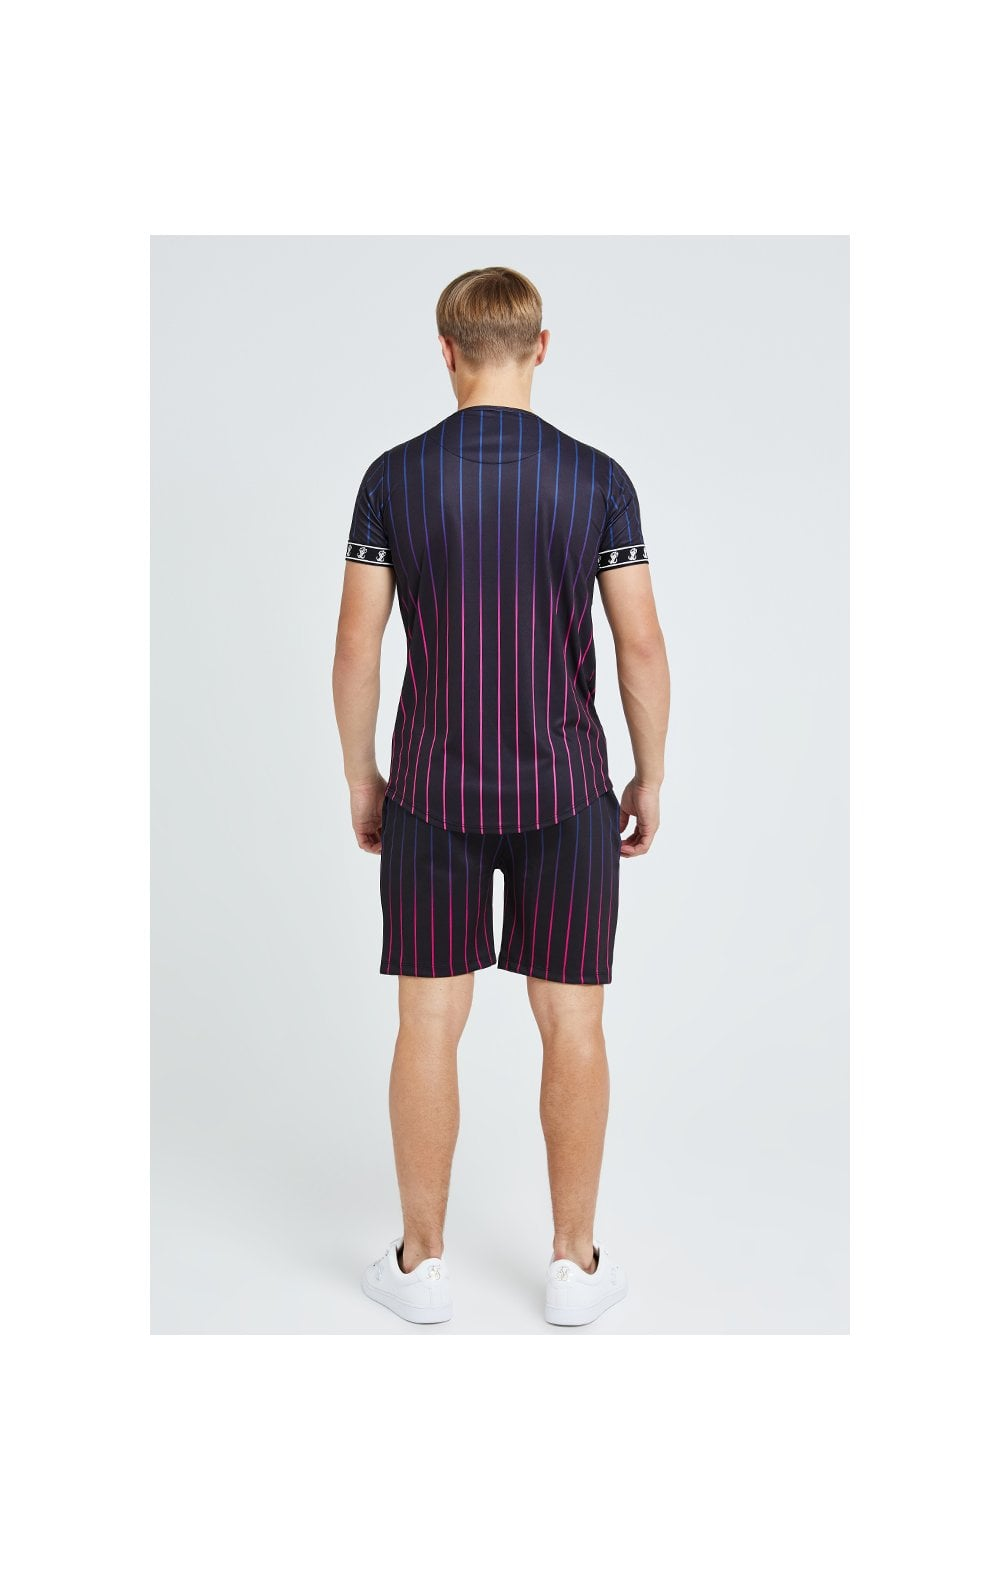 Load image into Gallery viewer, Illusive London Fade Stripe Shorts - Black (7)